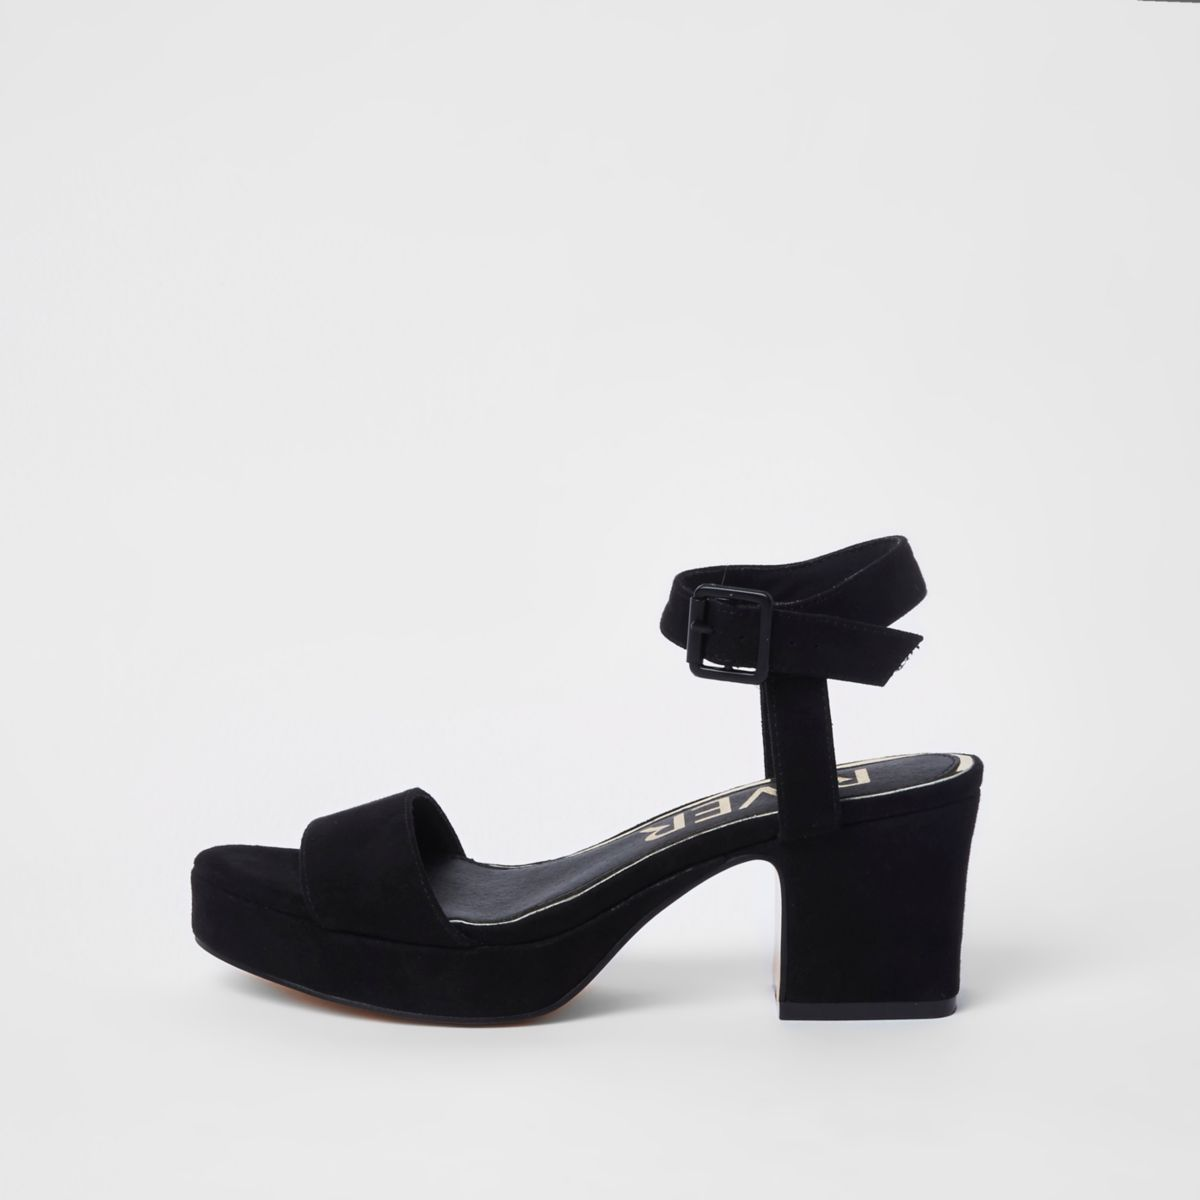 Black open toe block heel sandals